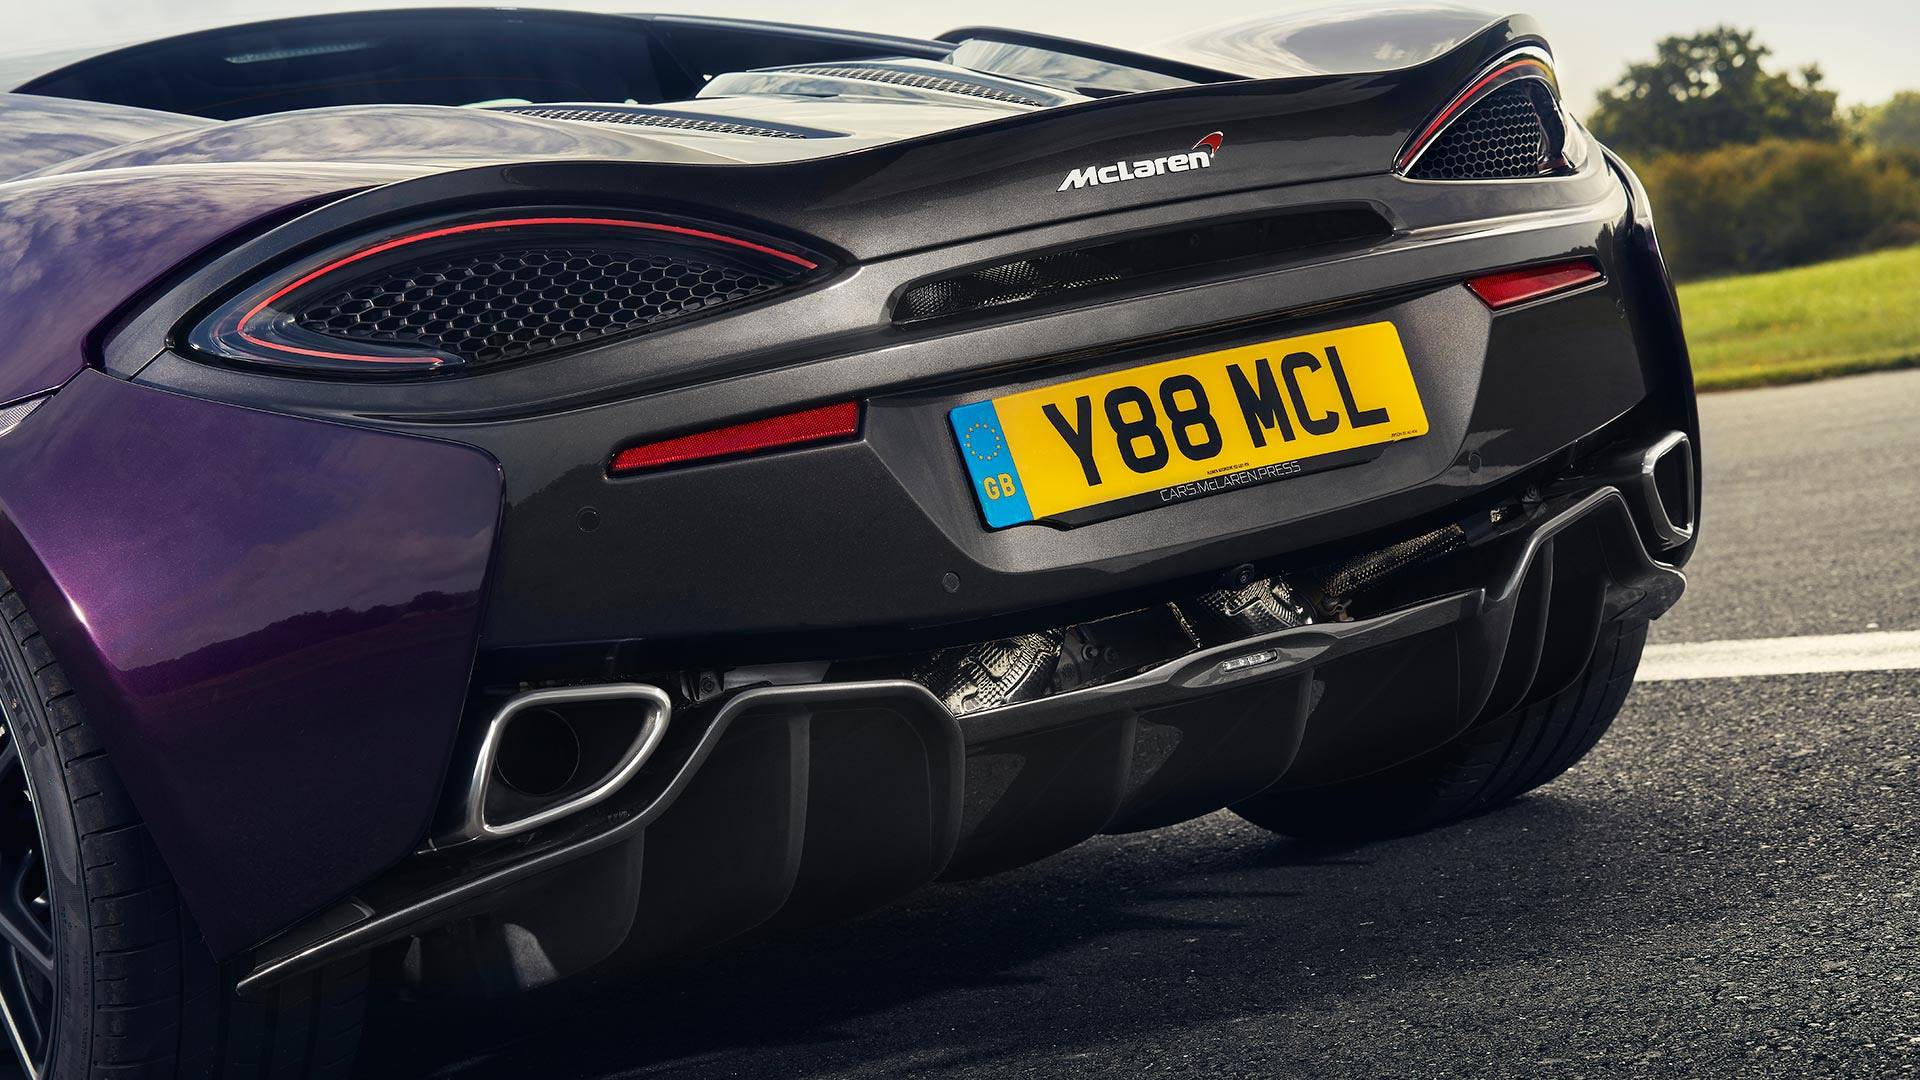 Mclaren S New Titanium Exhaust Plays Music To Our Ears